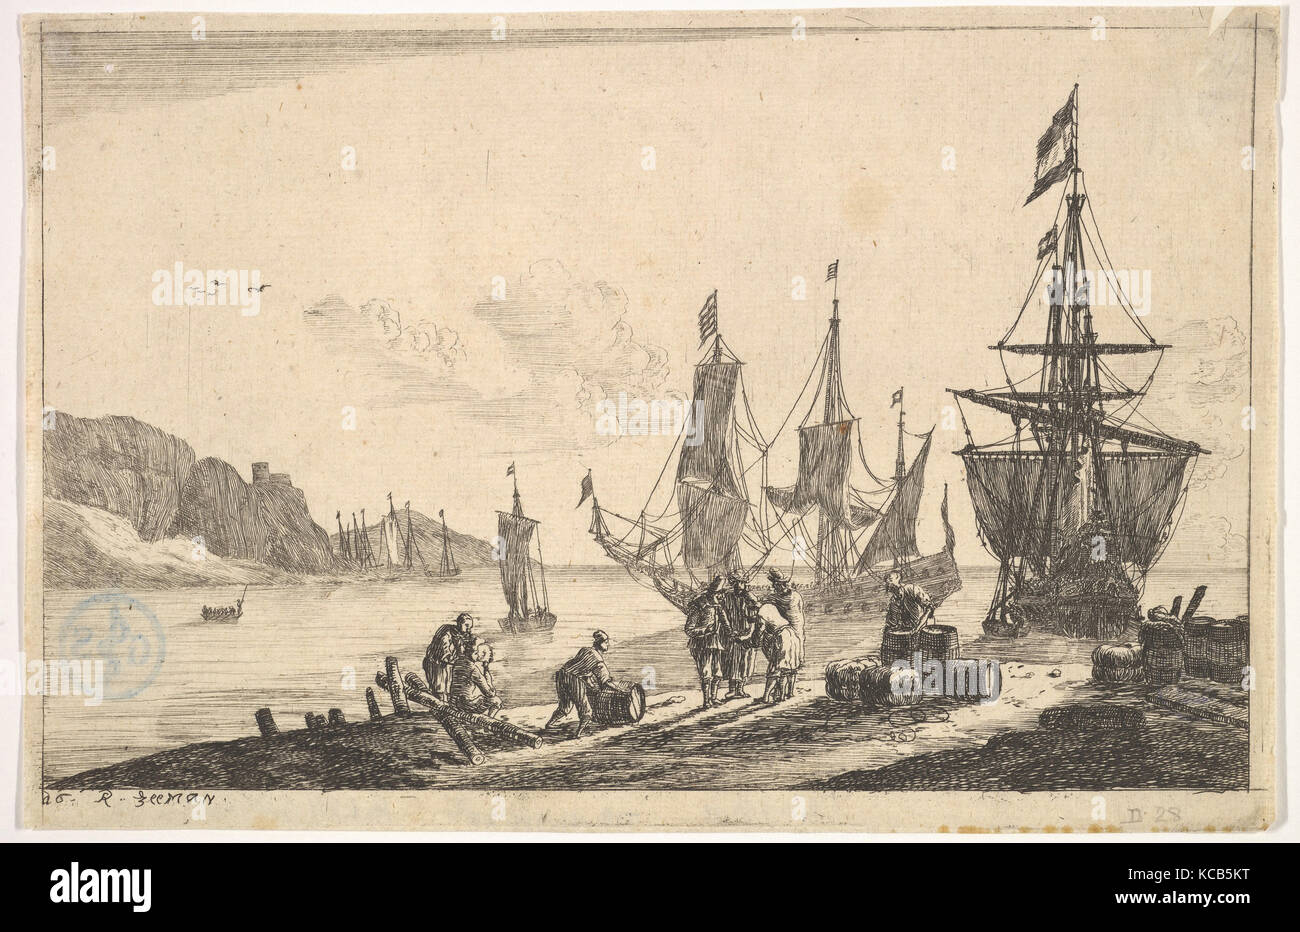 Bay with Sailing Vessels, Reinier Nooms, called Zeeman, 17th century - Stock Image